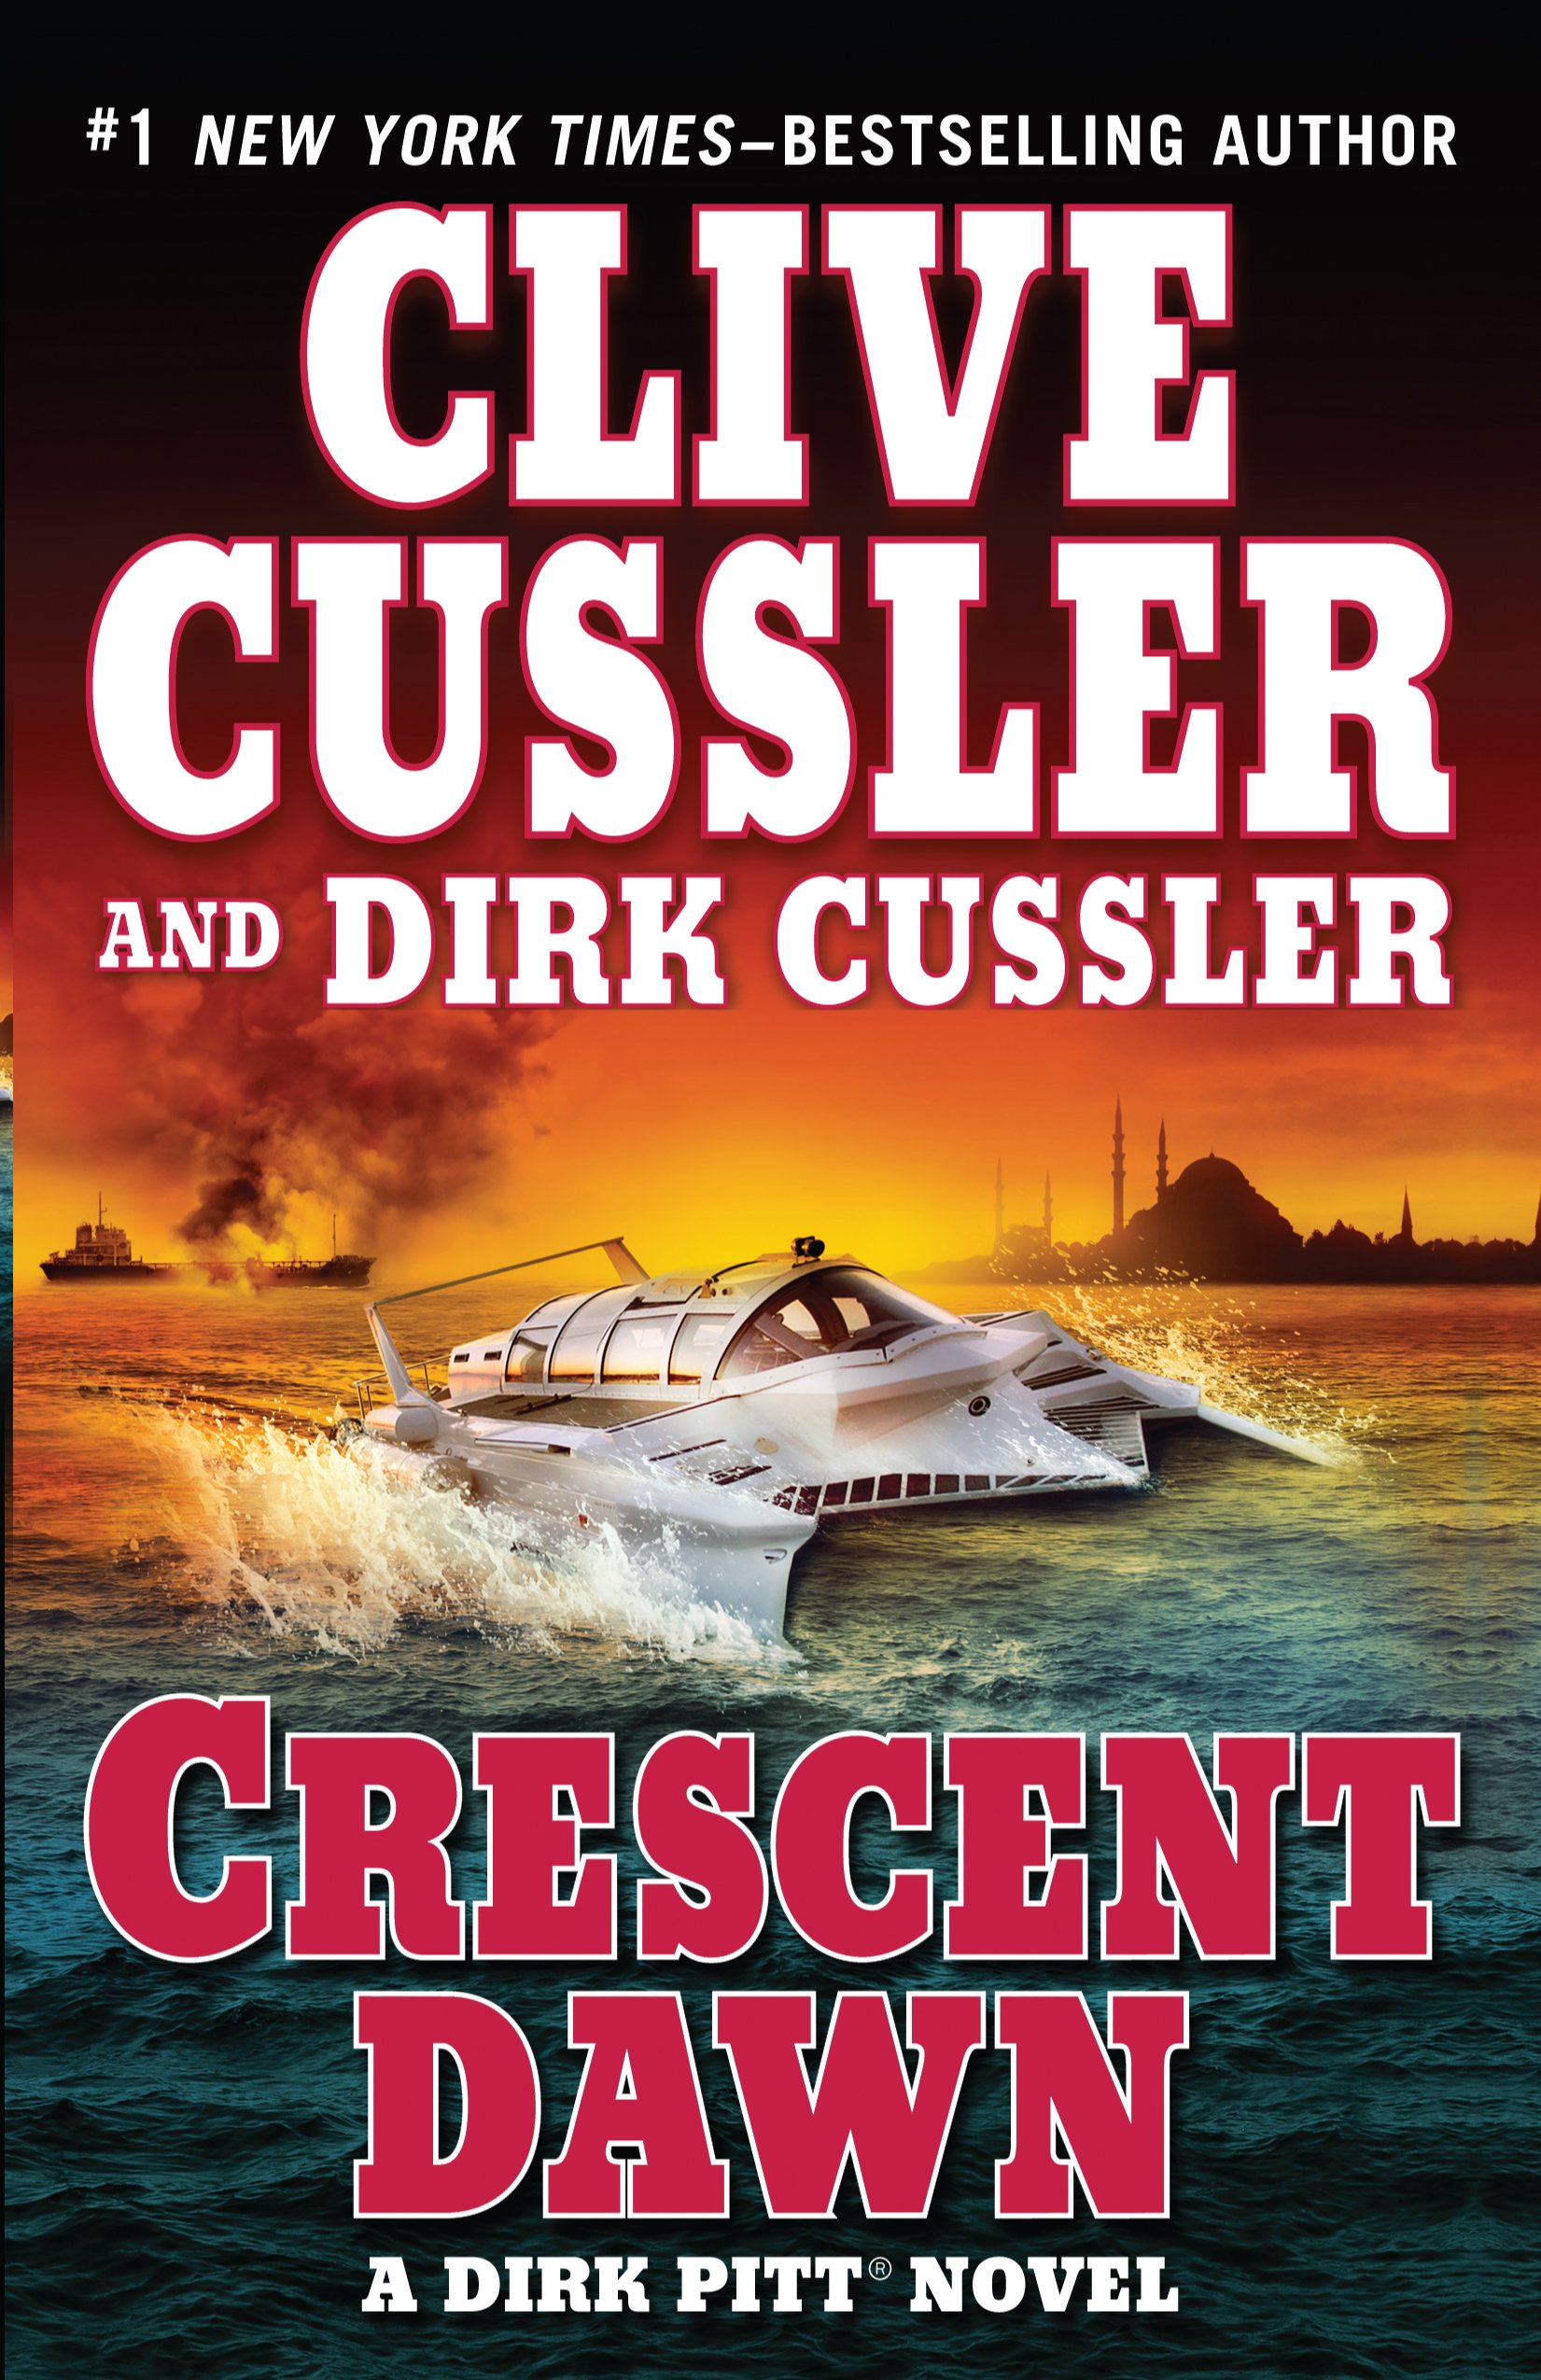 Book Cover of Crescent Dawn